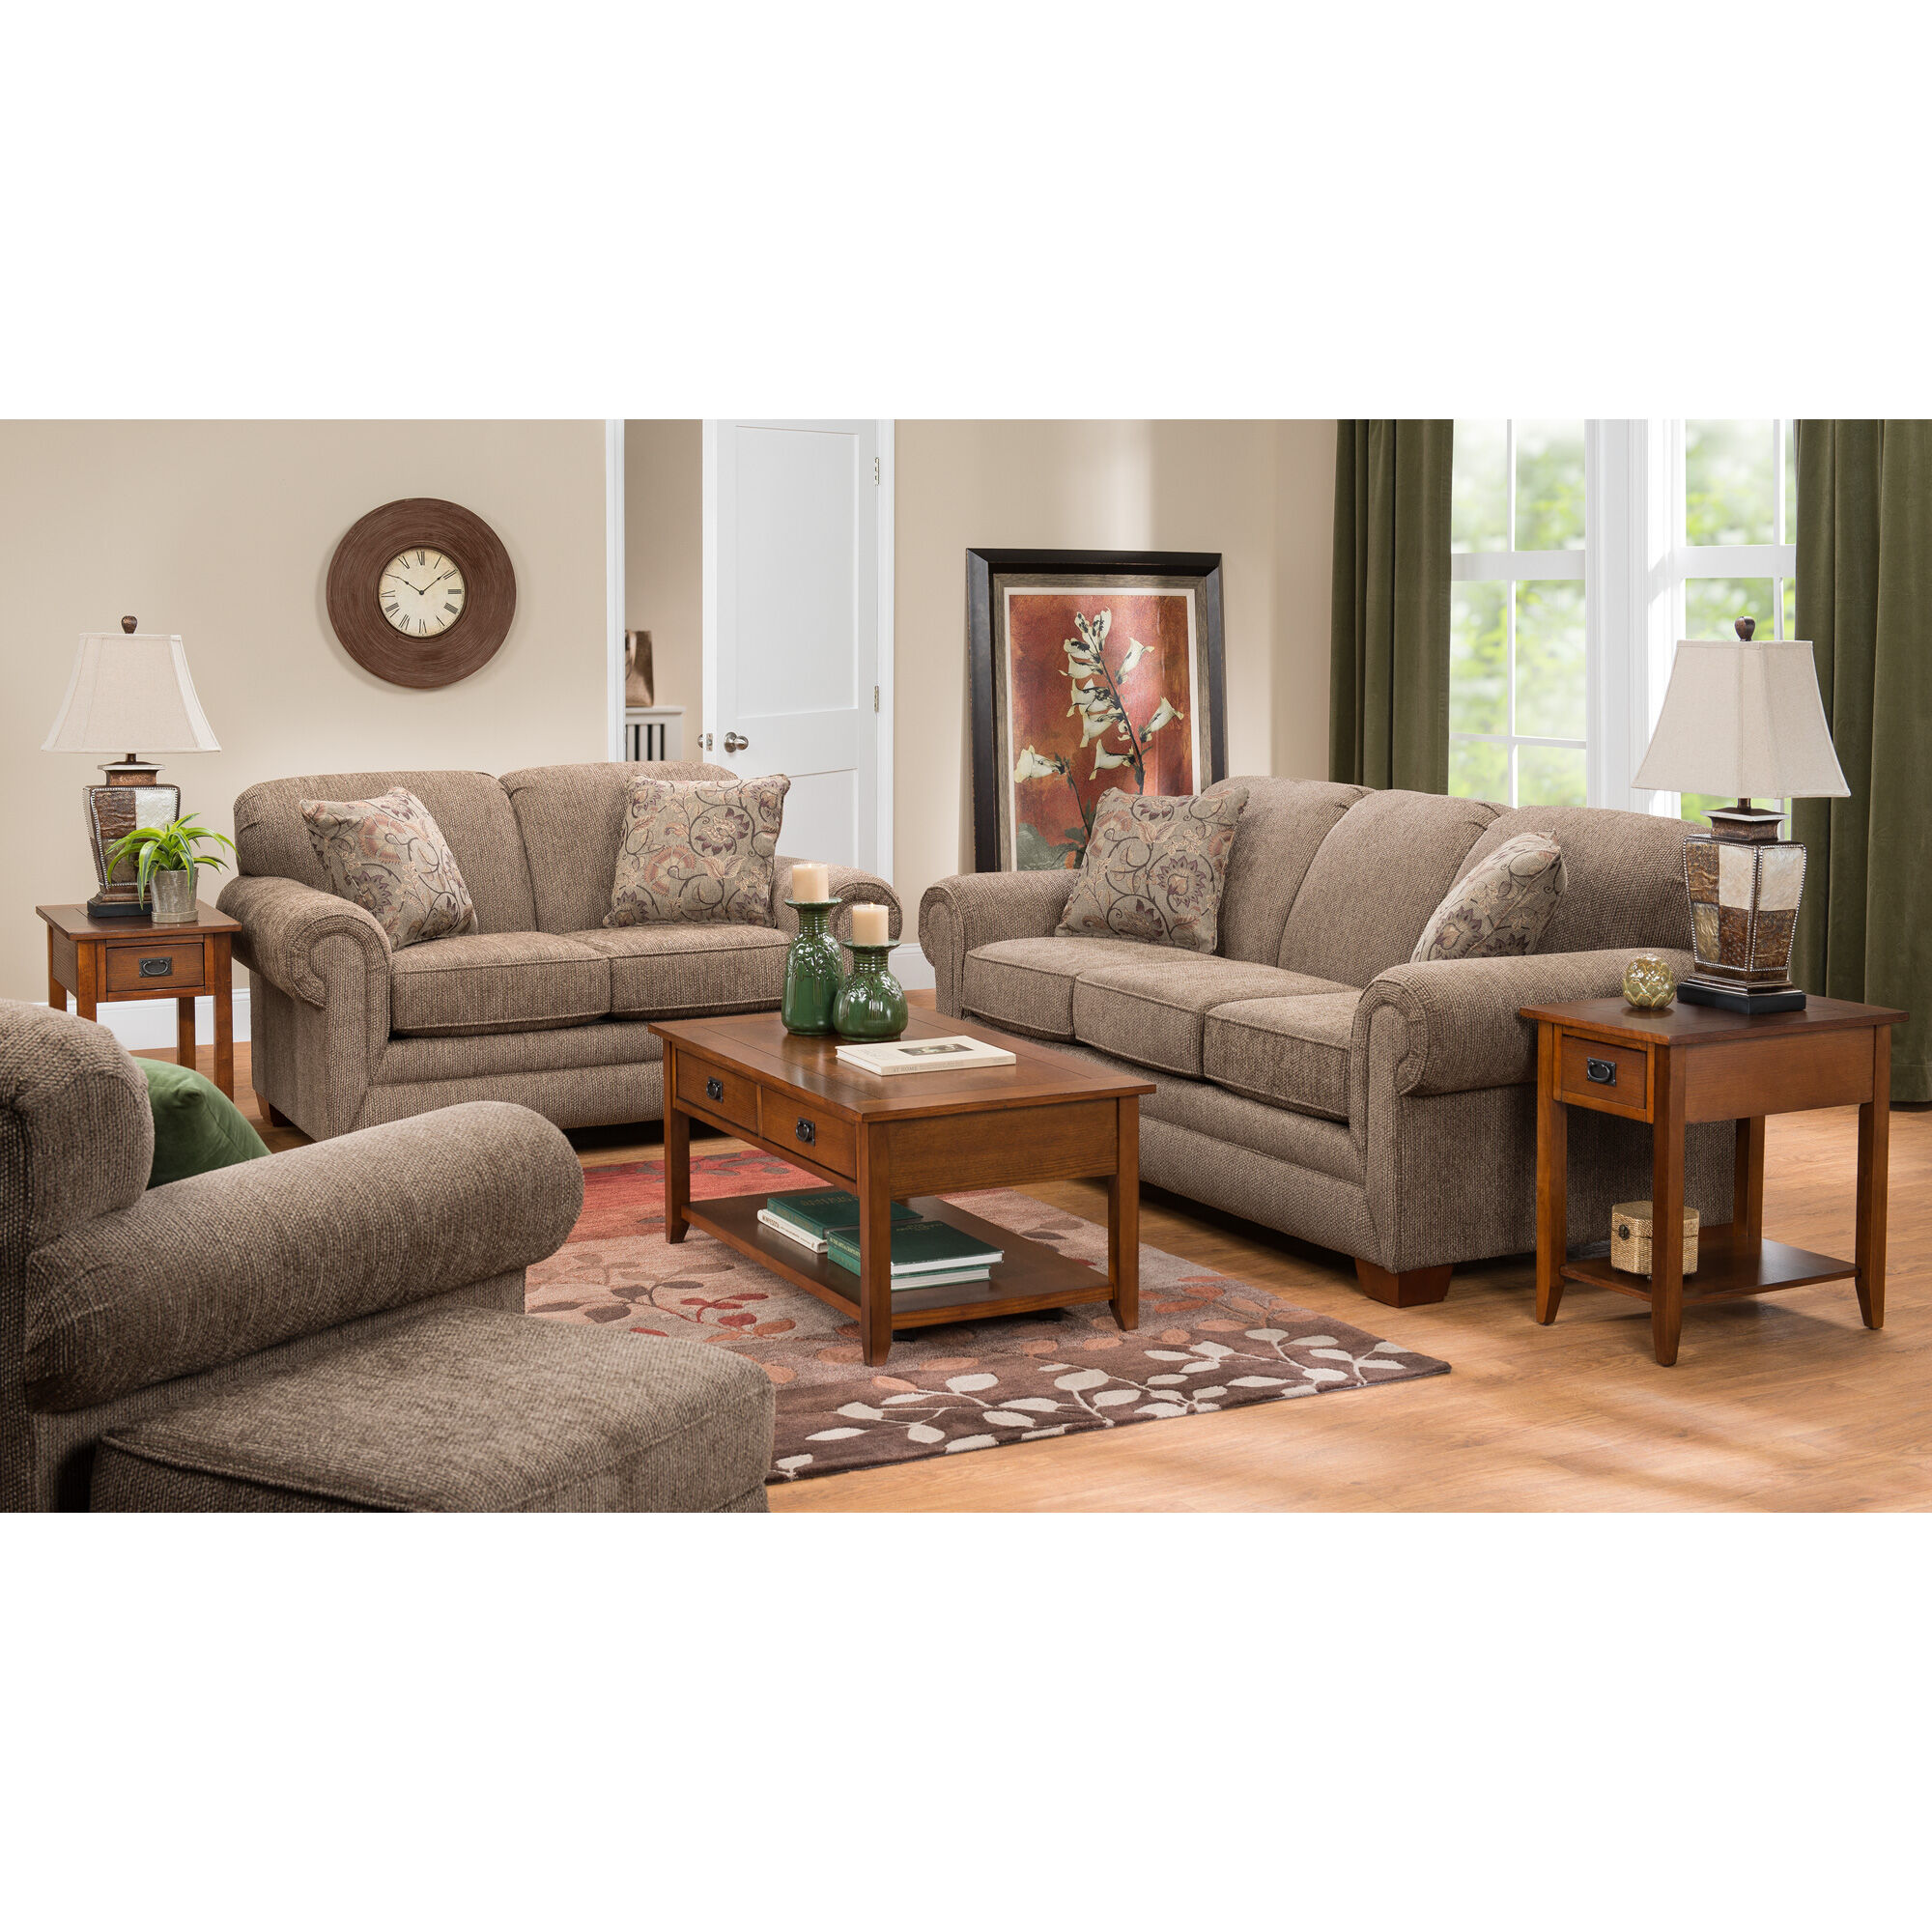 Living Room Furniture Sets Clearance